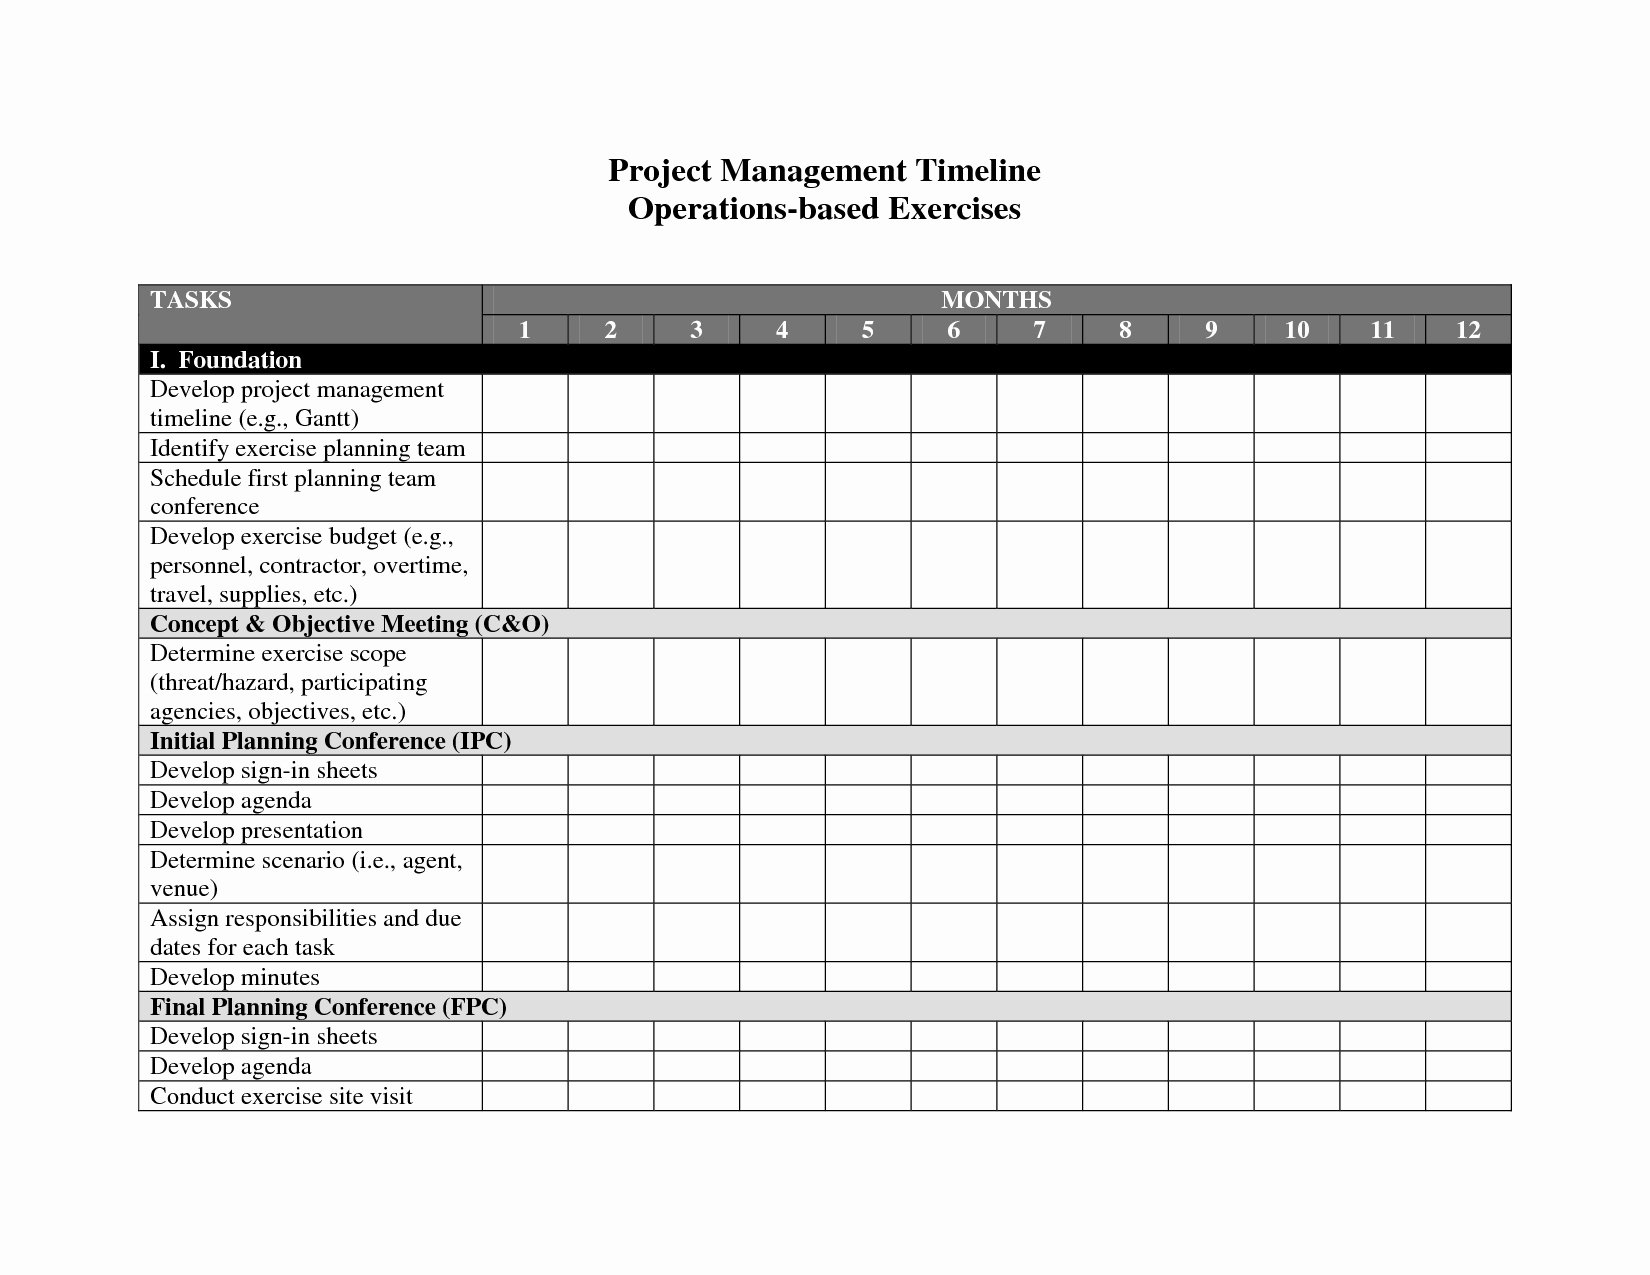 Project Timeline Template Word Luxury Project Management Timeline Template Word